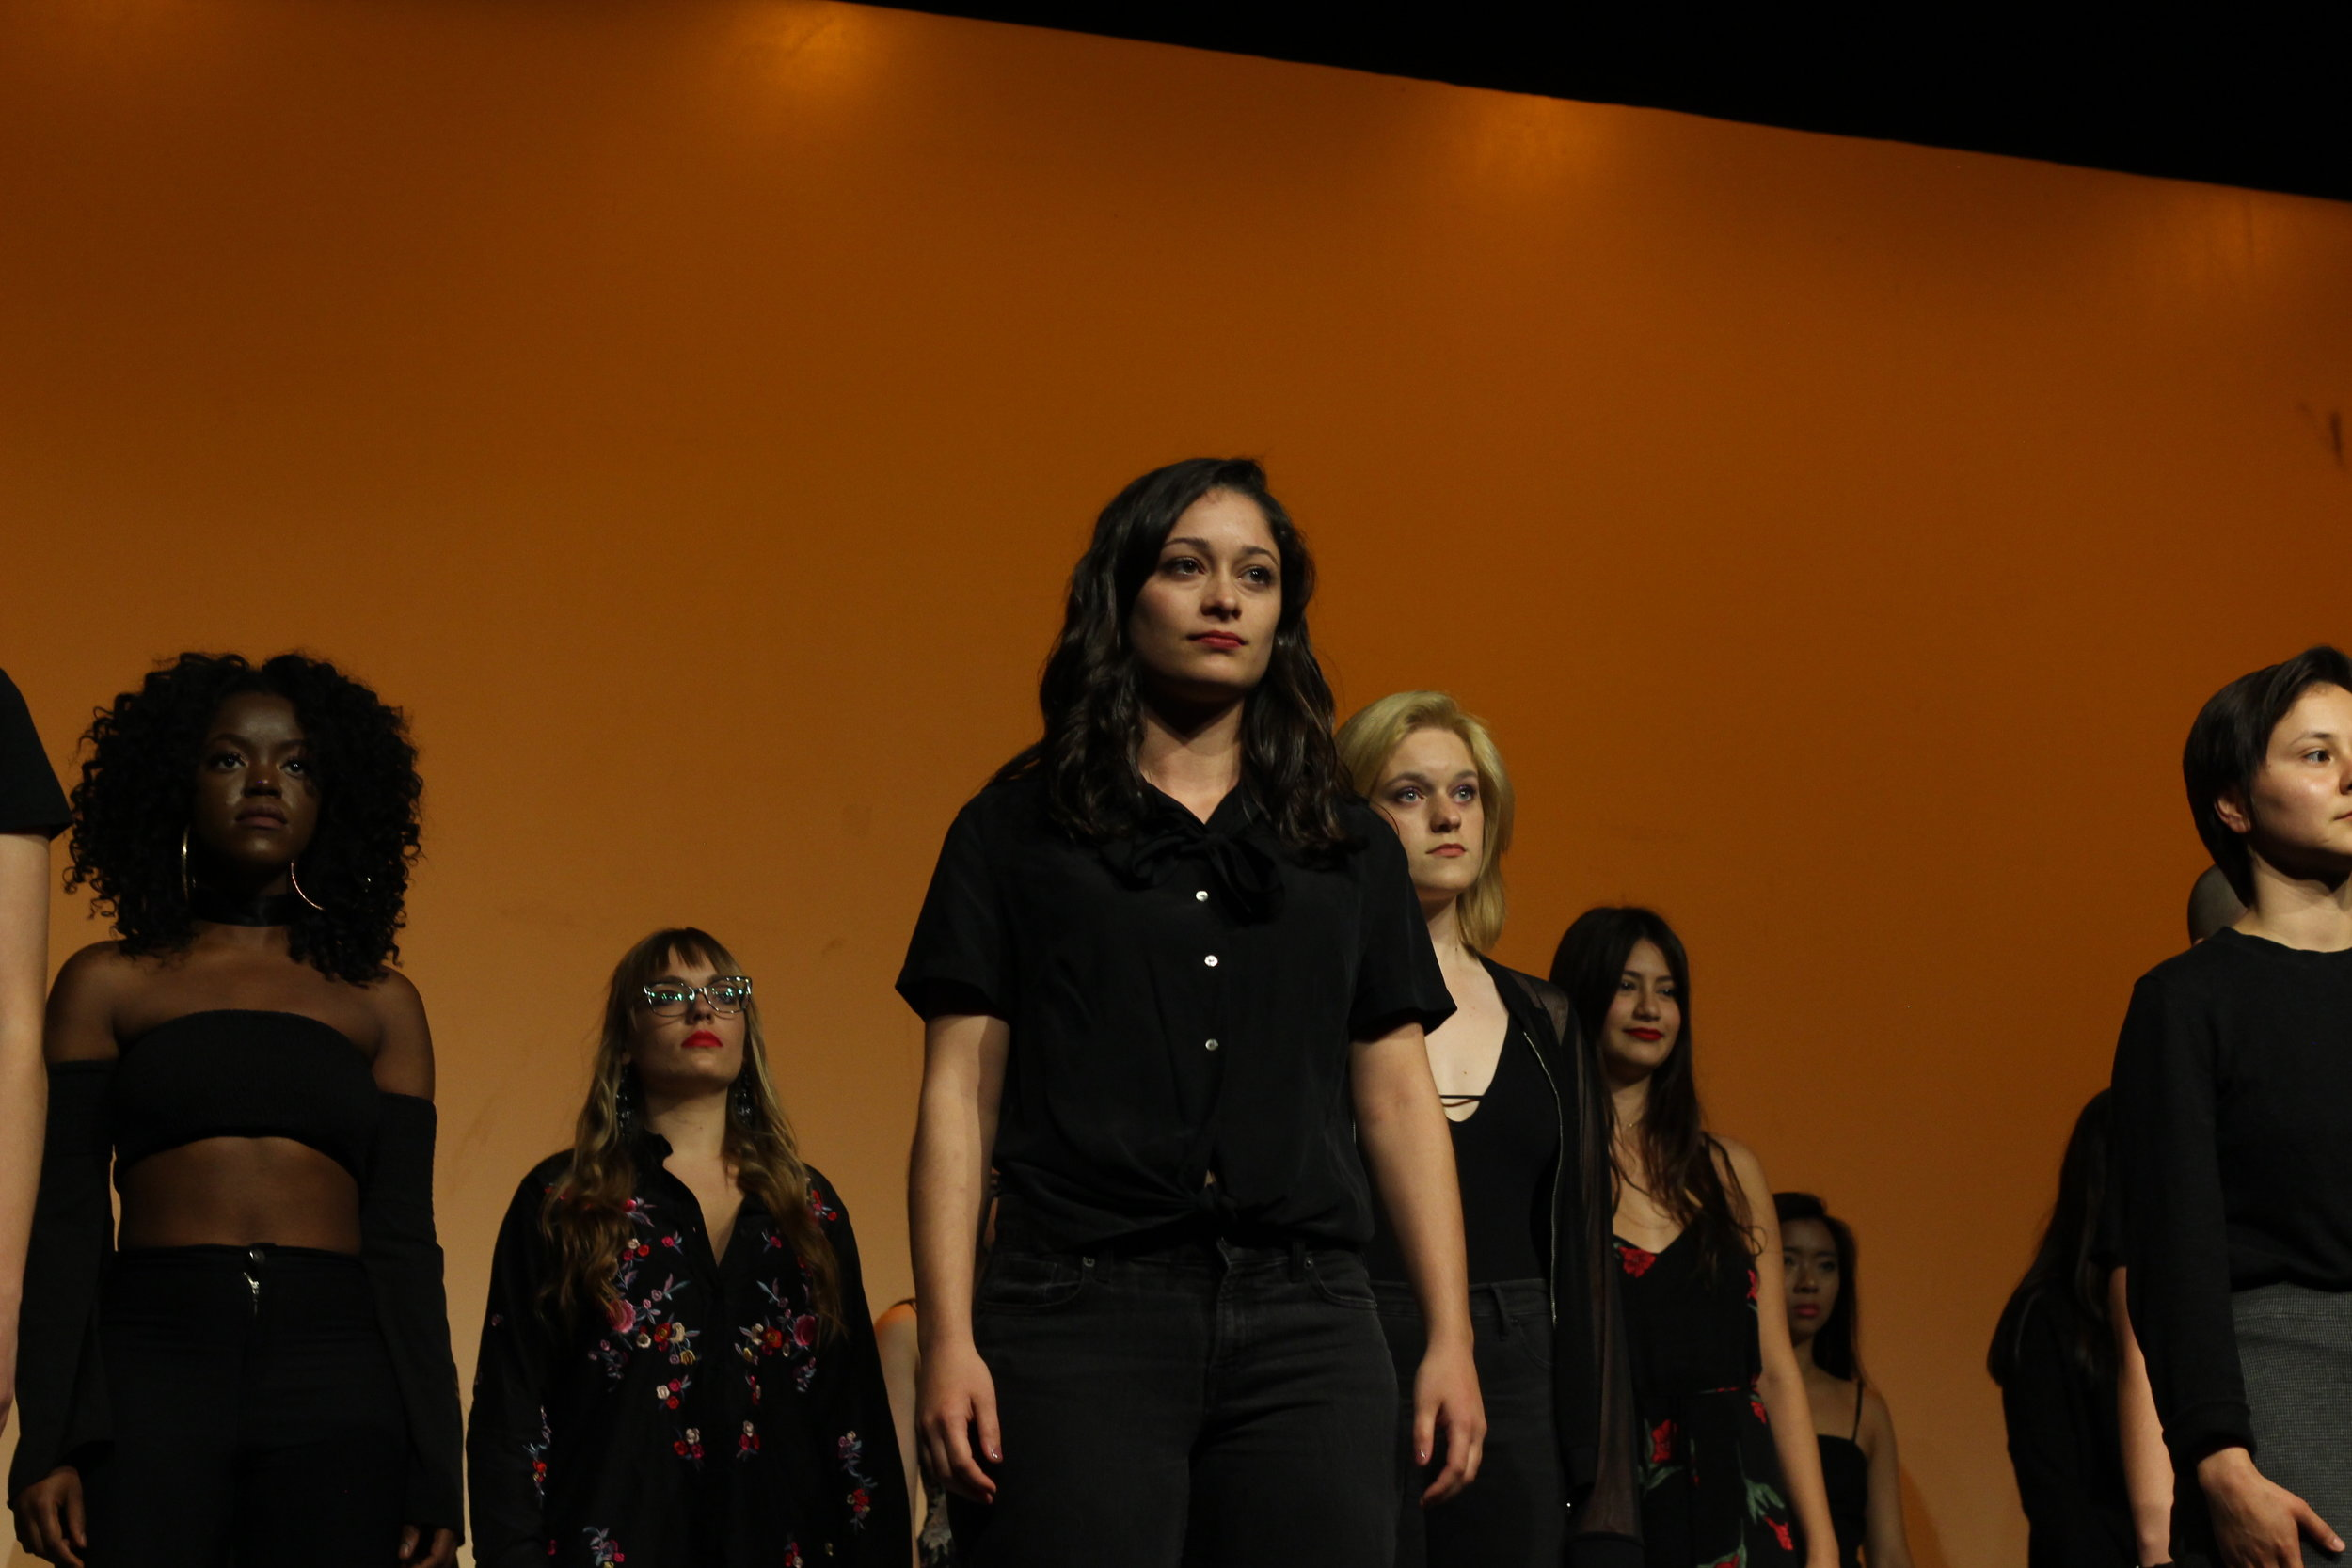 From left to right: Siji Deleawe, Jada Fraser, Liz Schasel, Alexandria Wagner, Emily Mackay, Paulina Kuo and Lily Gonzales